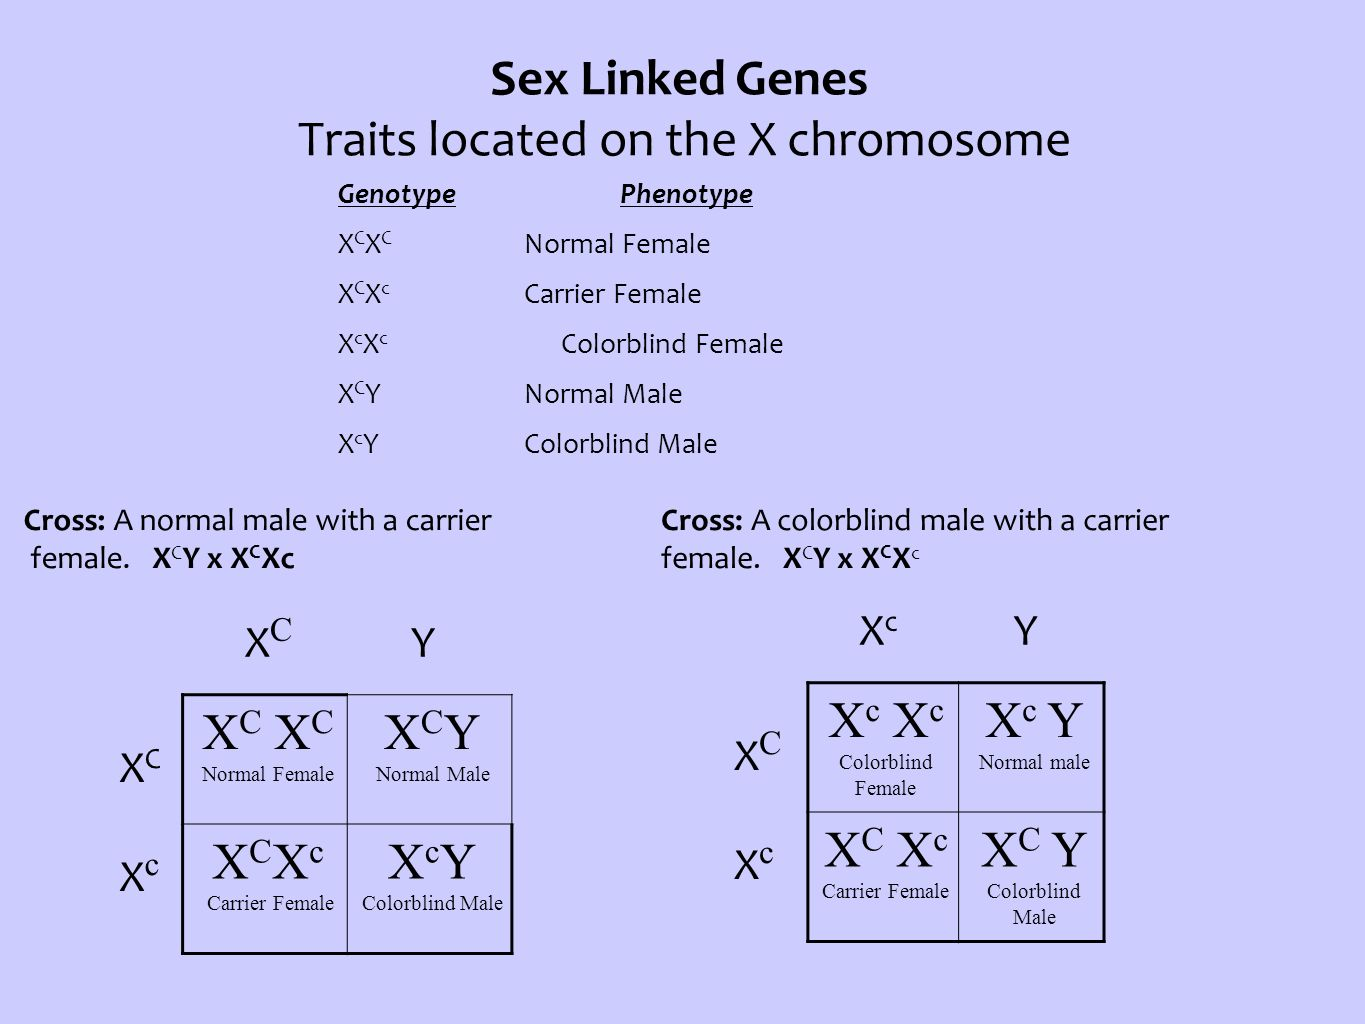 Sex Linked Genes Traits located on the X chromosome Genotype Phenotype X C X C Normal Female X C X c Carrier Female X c X c Colorblind Female X C YNor